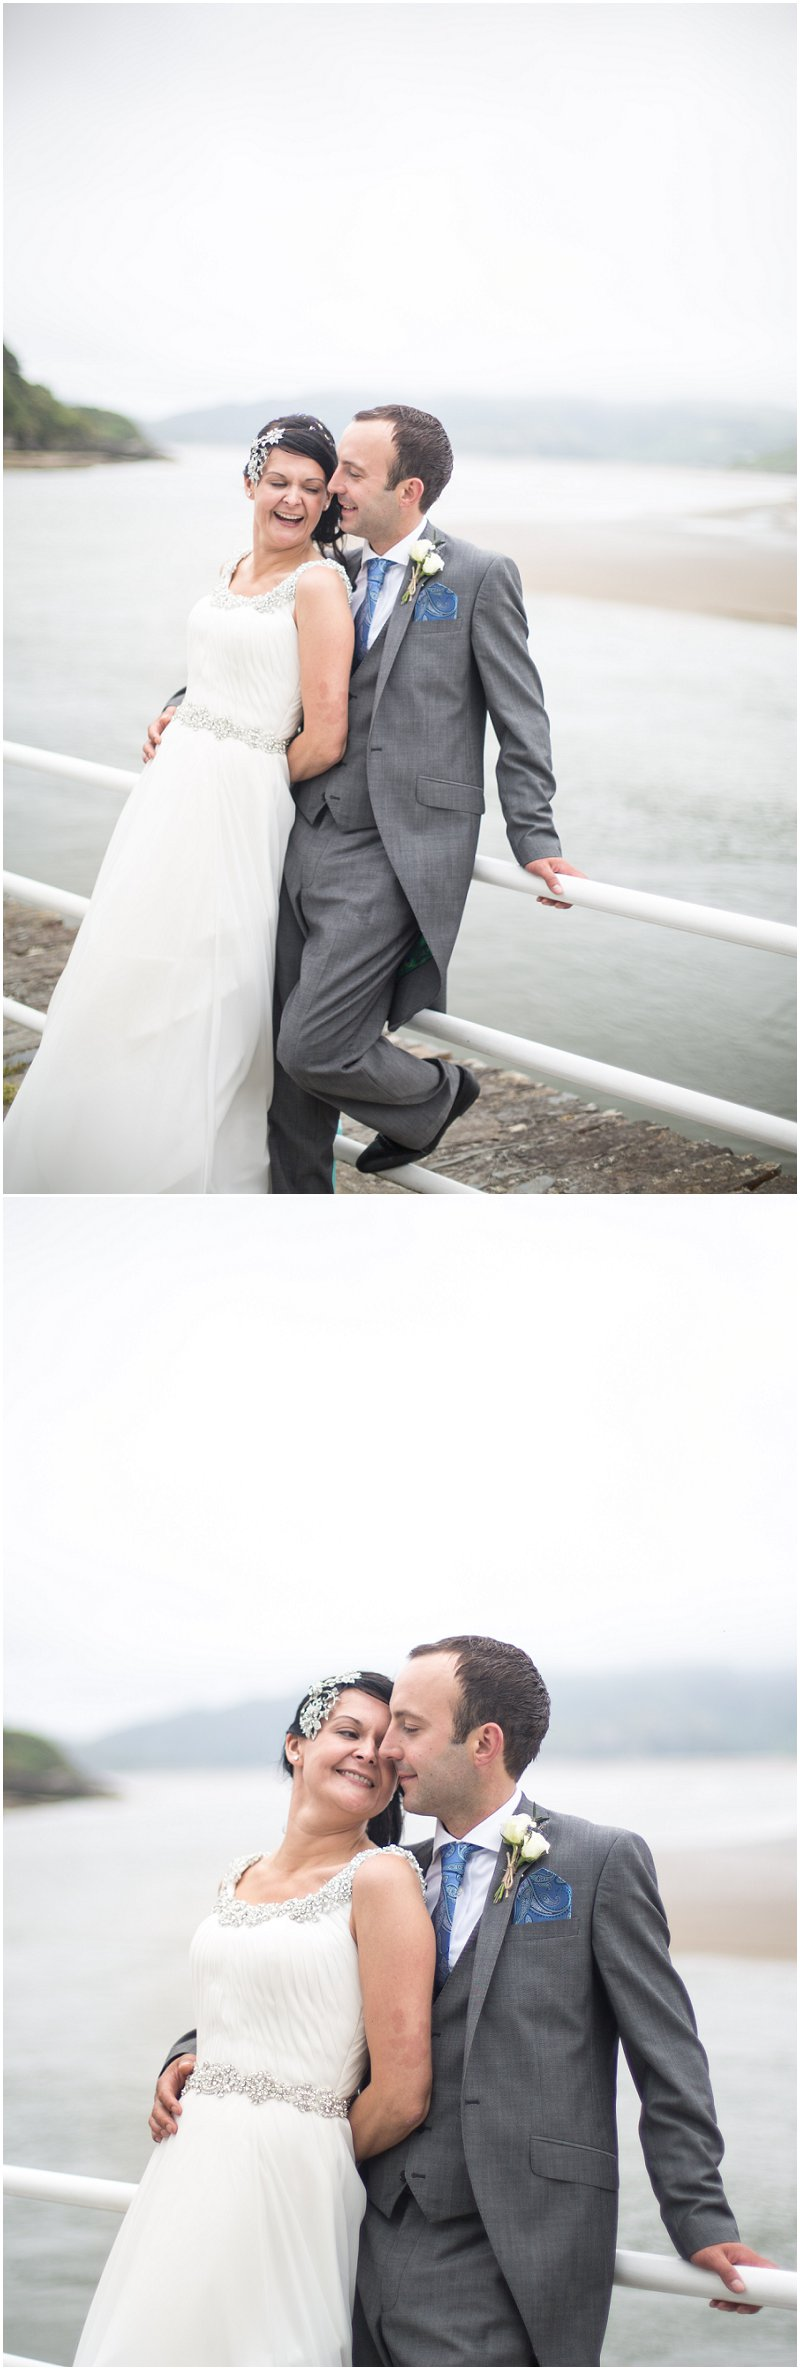 Bride and Groom having fun during portrait session, Portmeirion Wedding Photographer